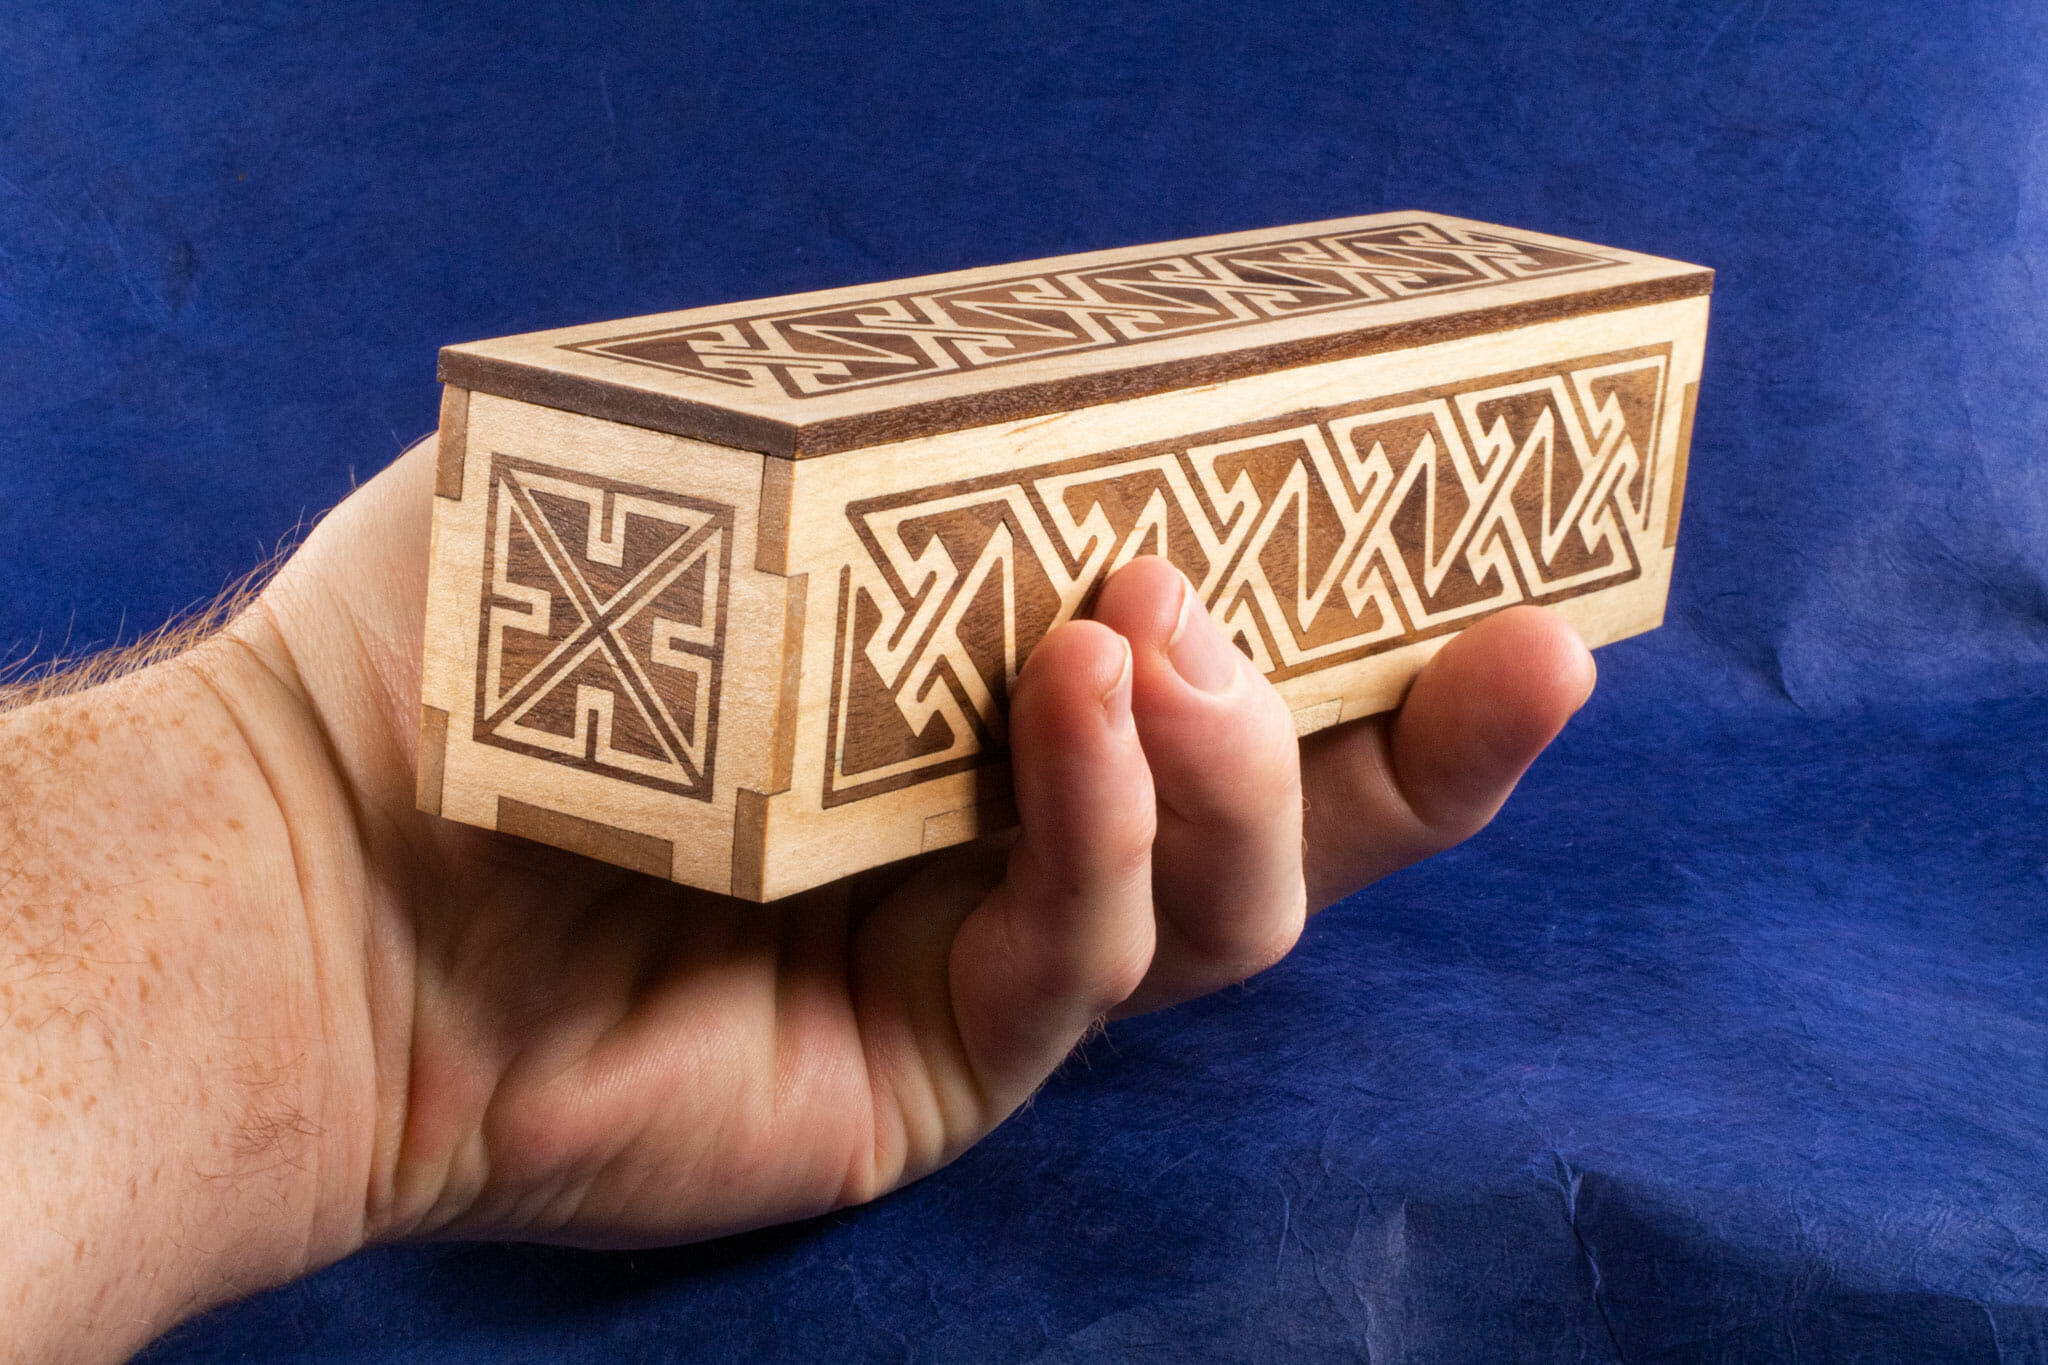 Long Inlaid Celtic Key Pattern Box (hand-held for scale)